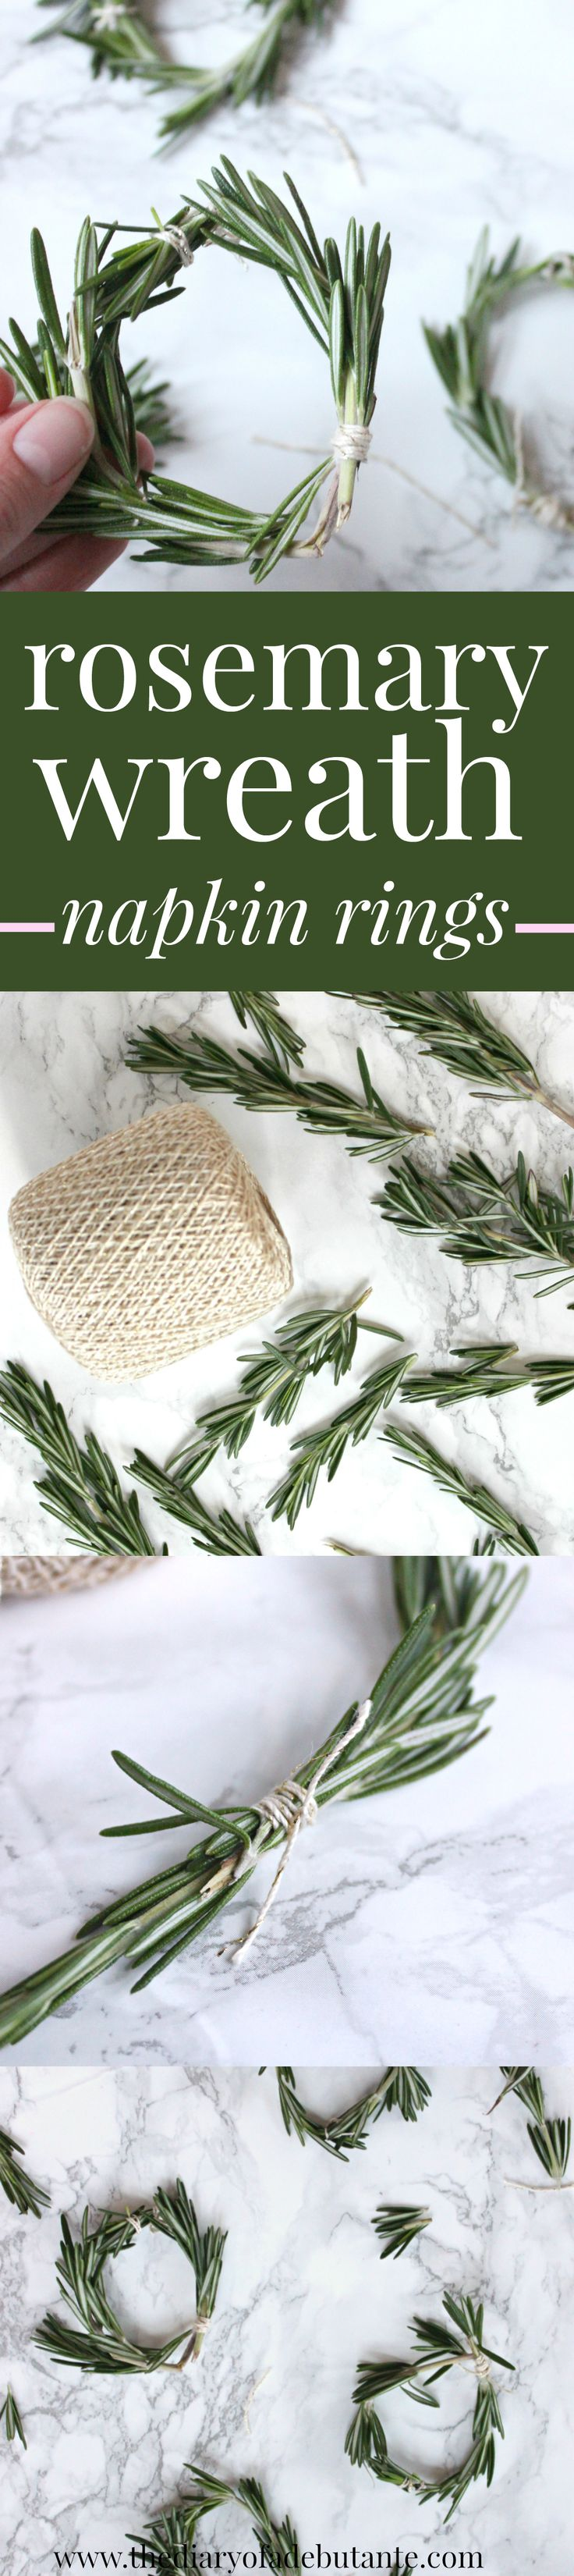 Rosemary wreath napkin ring tutorial. Such cute and easy-to-make fall table decorations! Would work well for Thanksgiving, Christmas, or any festive party!